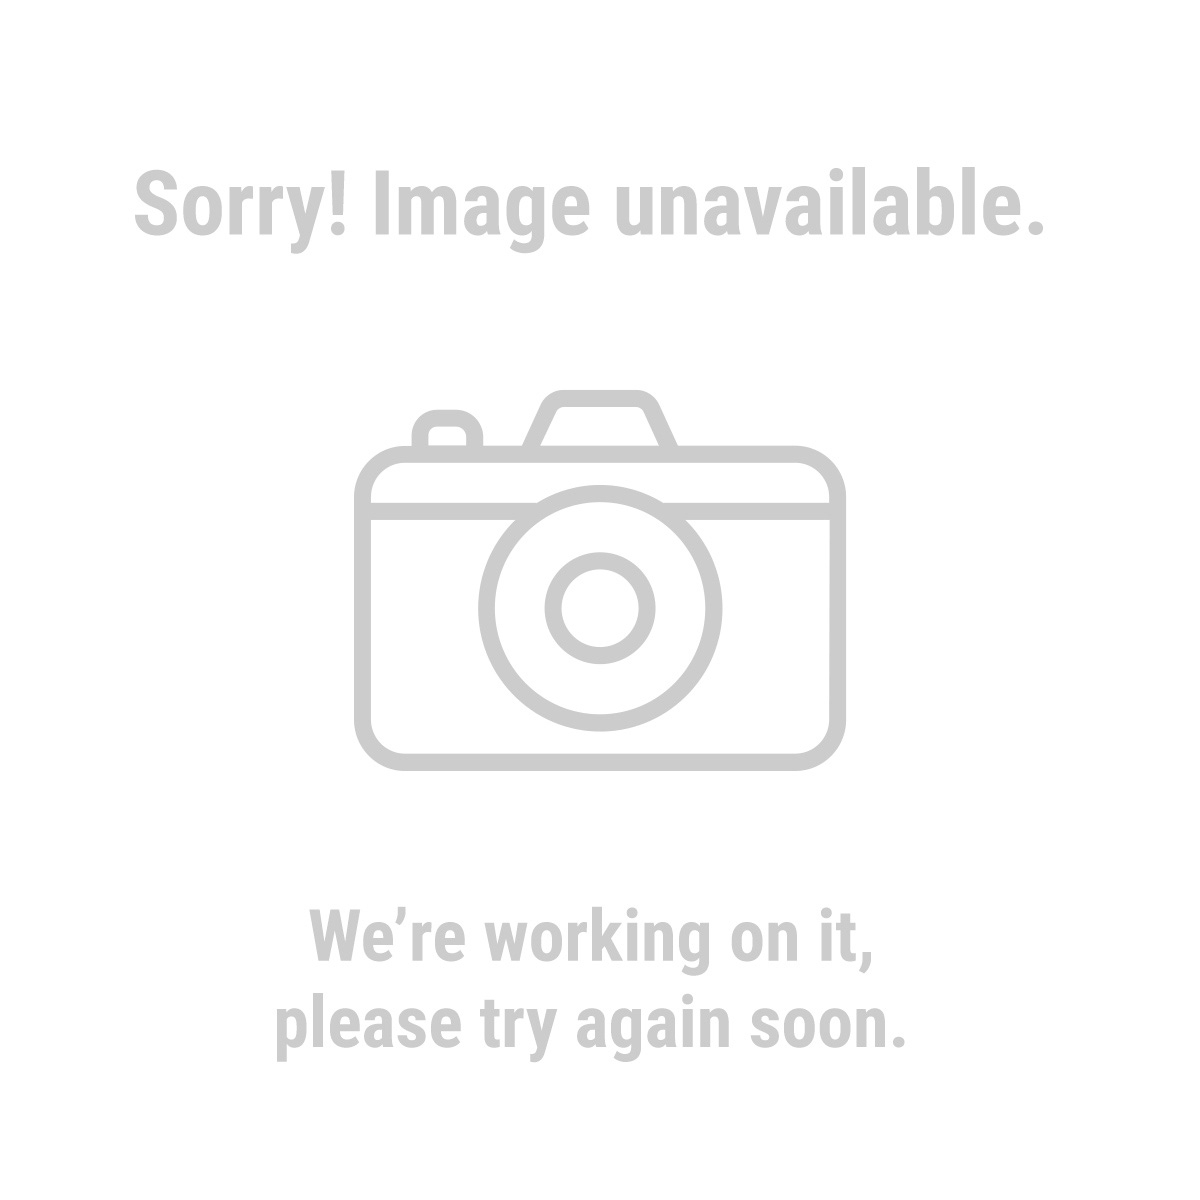 Western Safety 94105 Lumbar Support Belt - X-Large